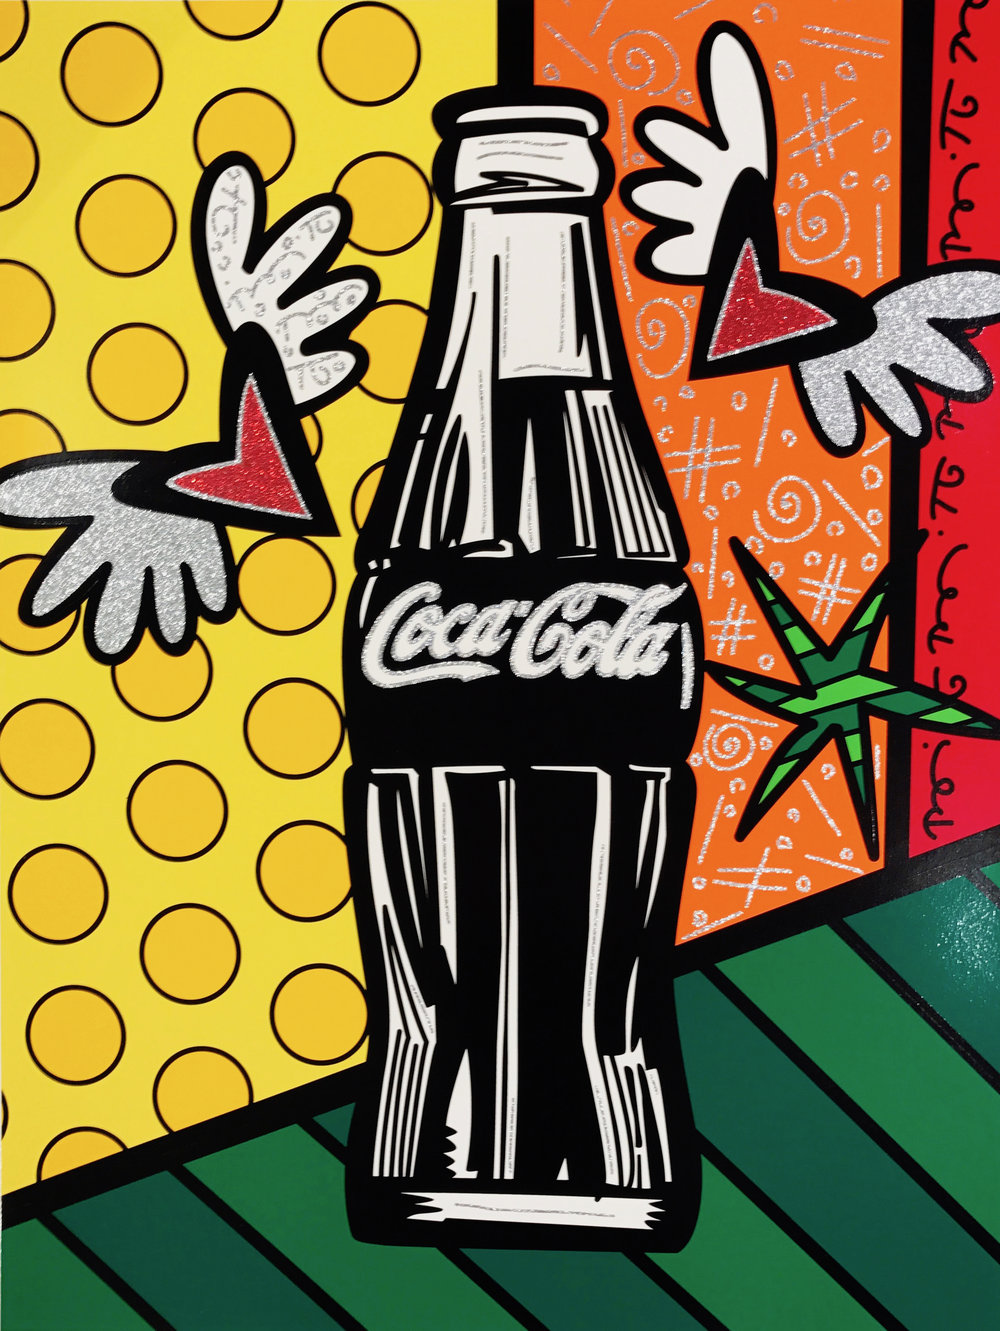 """Coca-Cola V - Happiness"" Serigraph, Limited edition, No. 10 of 100 101.6 x76.2 cm 2016"